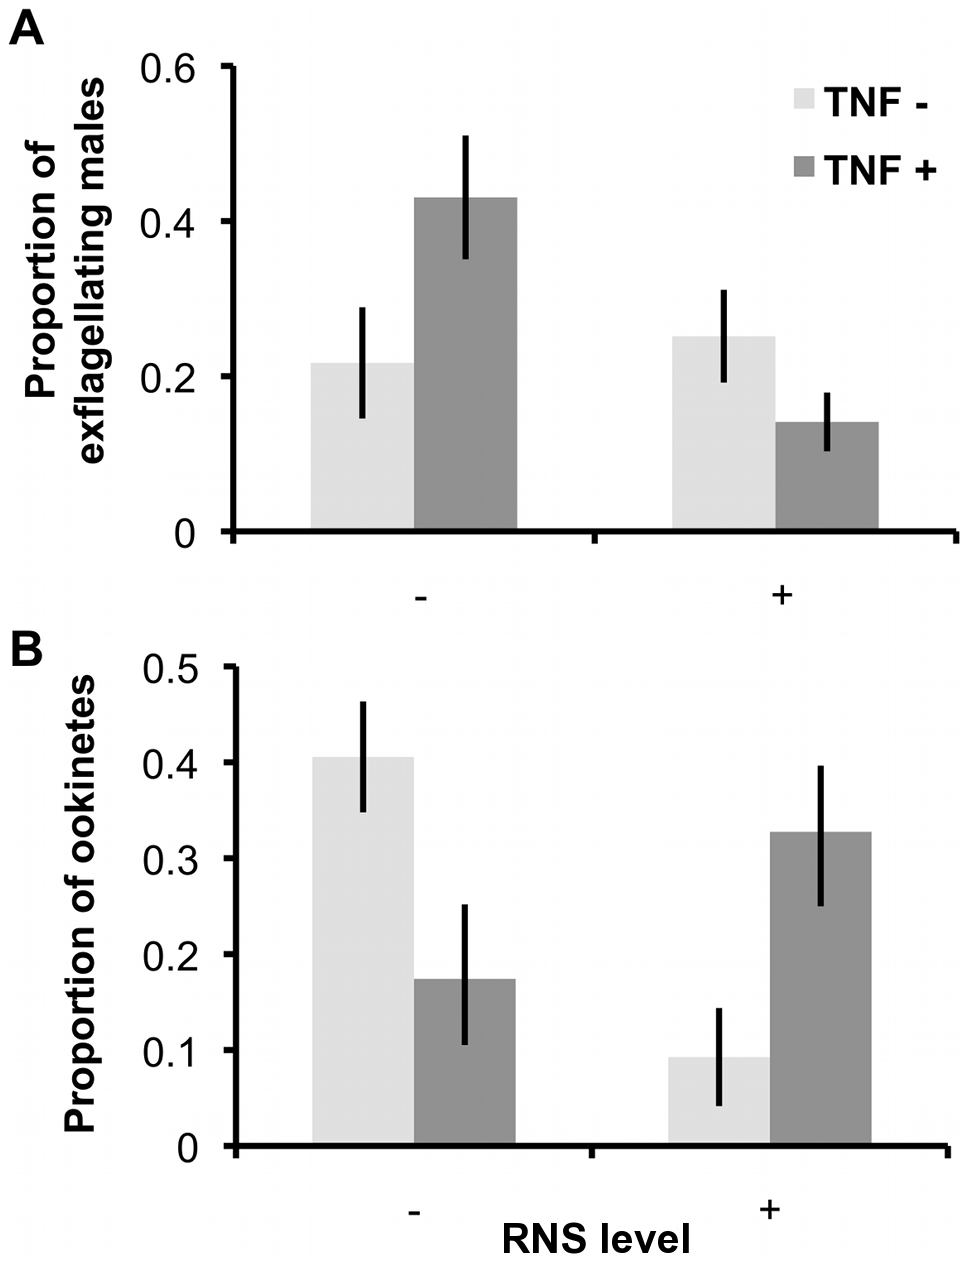 Exflagellation rates and ookinete production after exposure to RNS and TNF-α during gametogenesis.